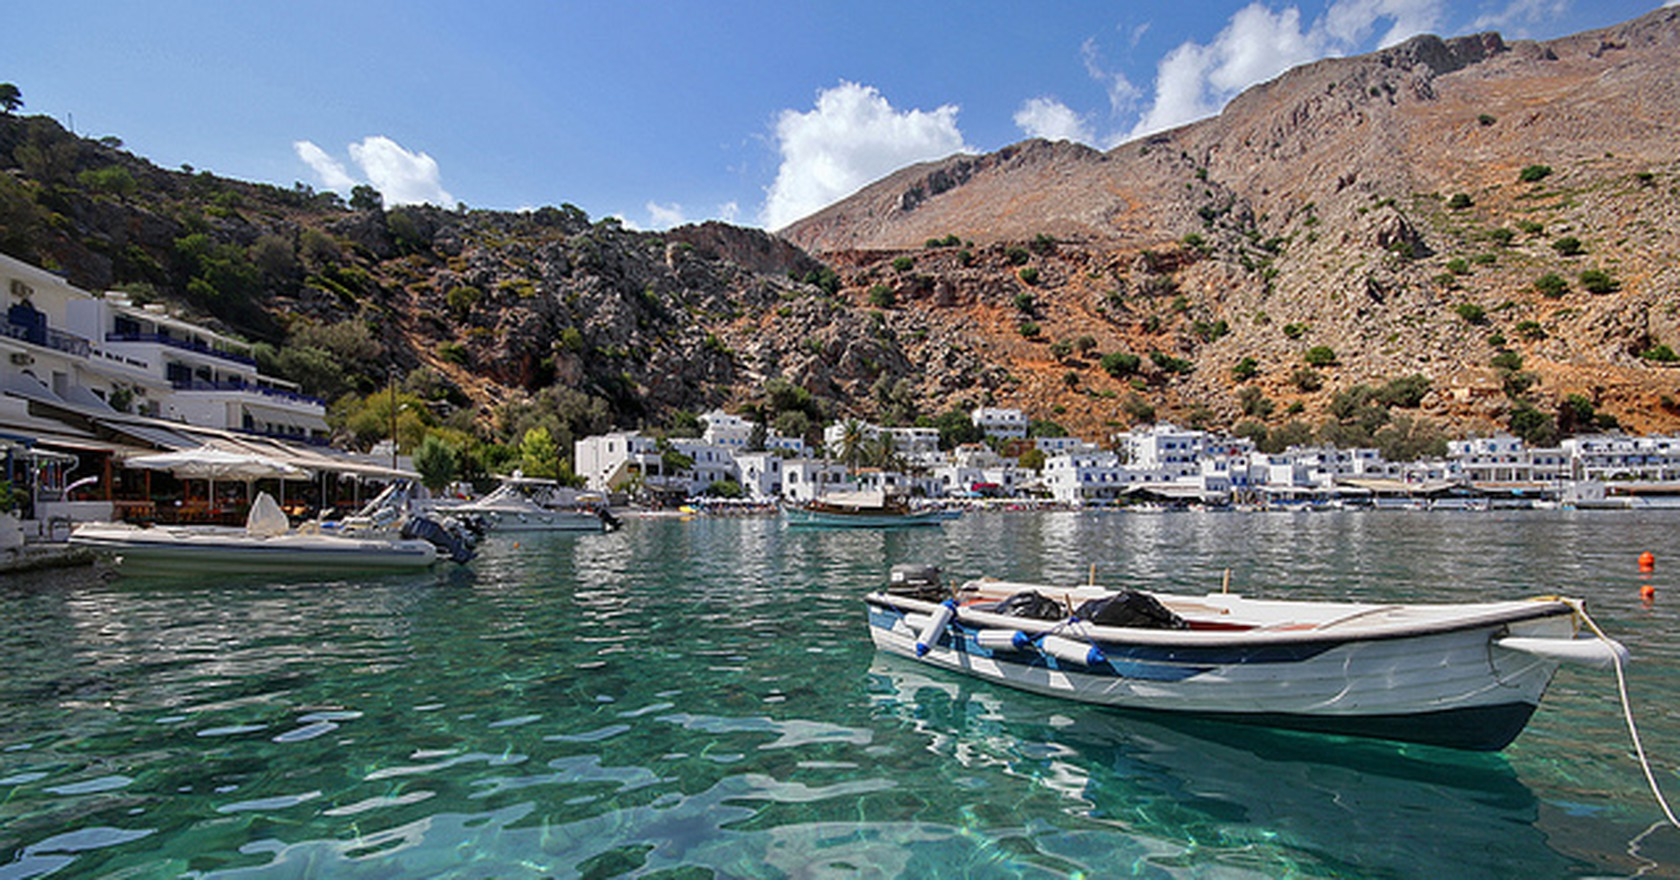 The 10 Most Beautiful Villages In Crete Greece Selis Youth Loutro Miguel Virkkunen Carvalho Flickr